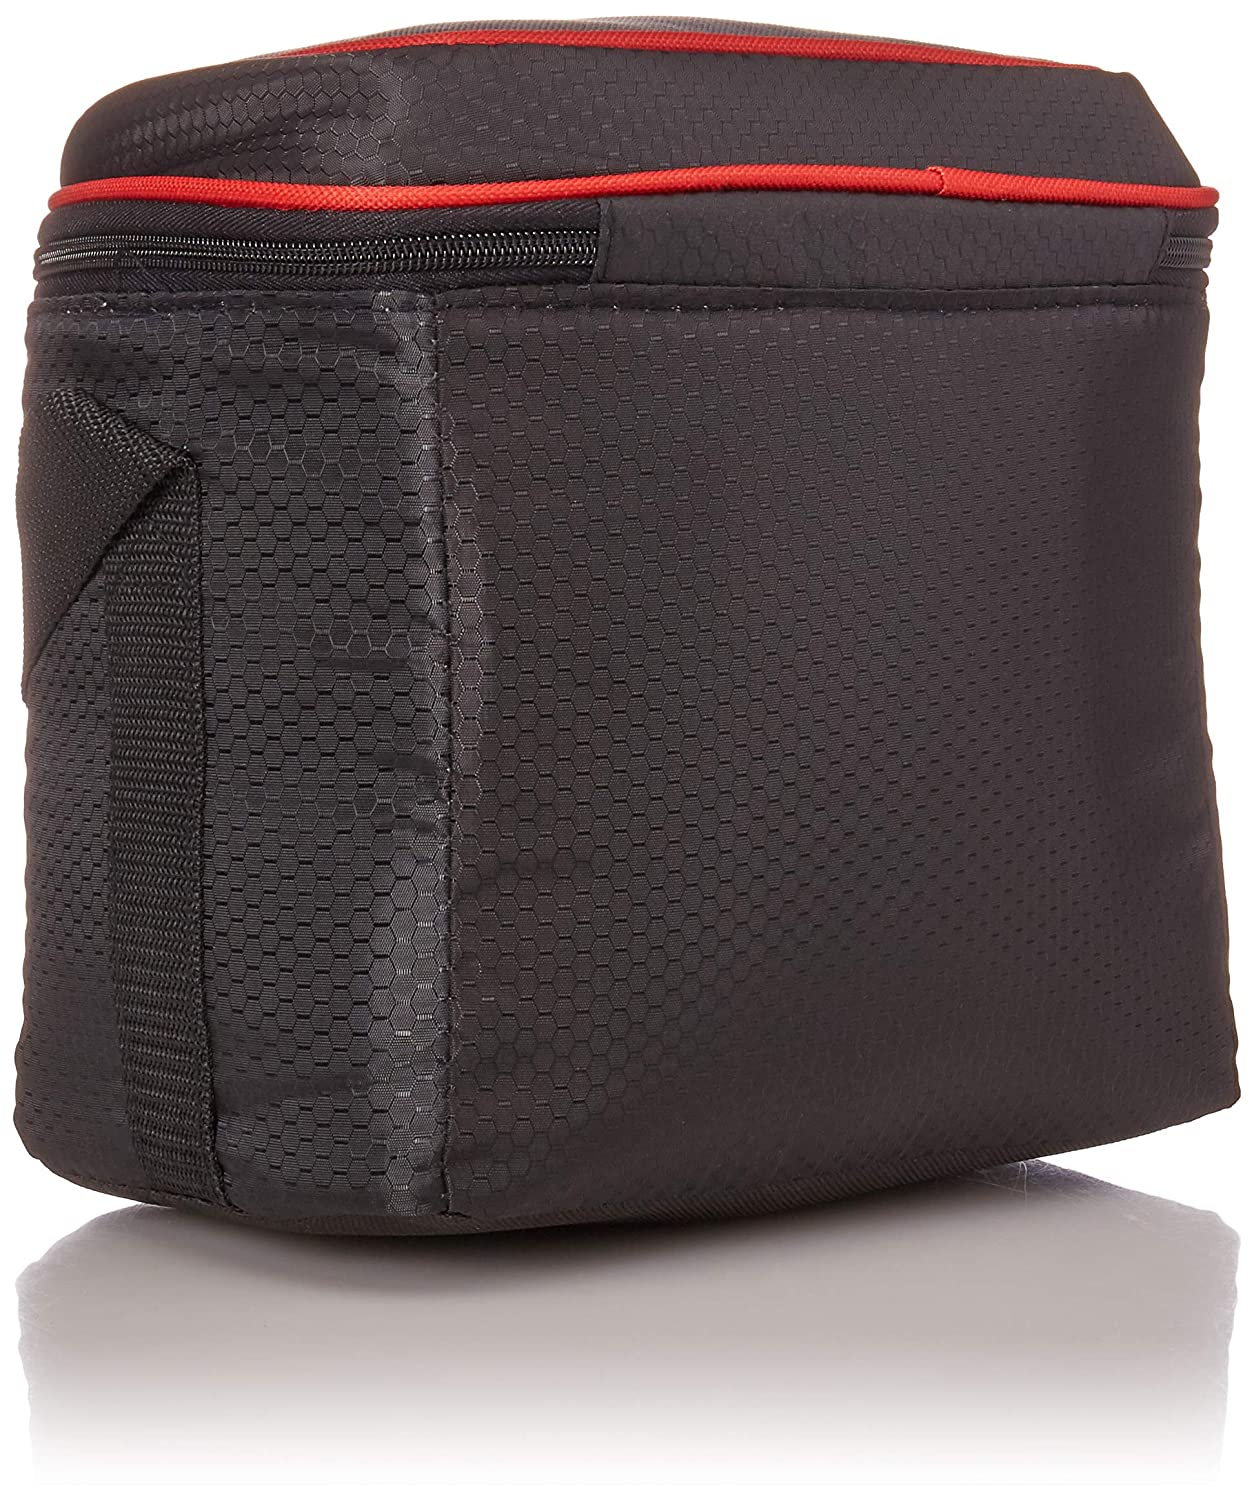 Coleman Soft Cooler Bag Keeps Ice Up to 24 Hours 9-Can Insulated Lunch Cooler with Adjustable Shoulder Straps Great for Picnics, BBQs, Camping, Tailgating Outdoor Activities